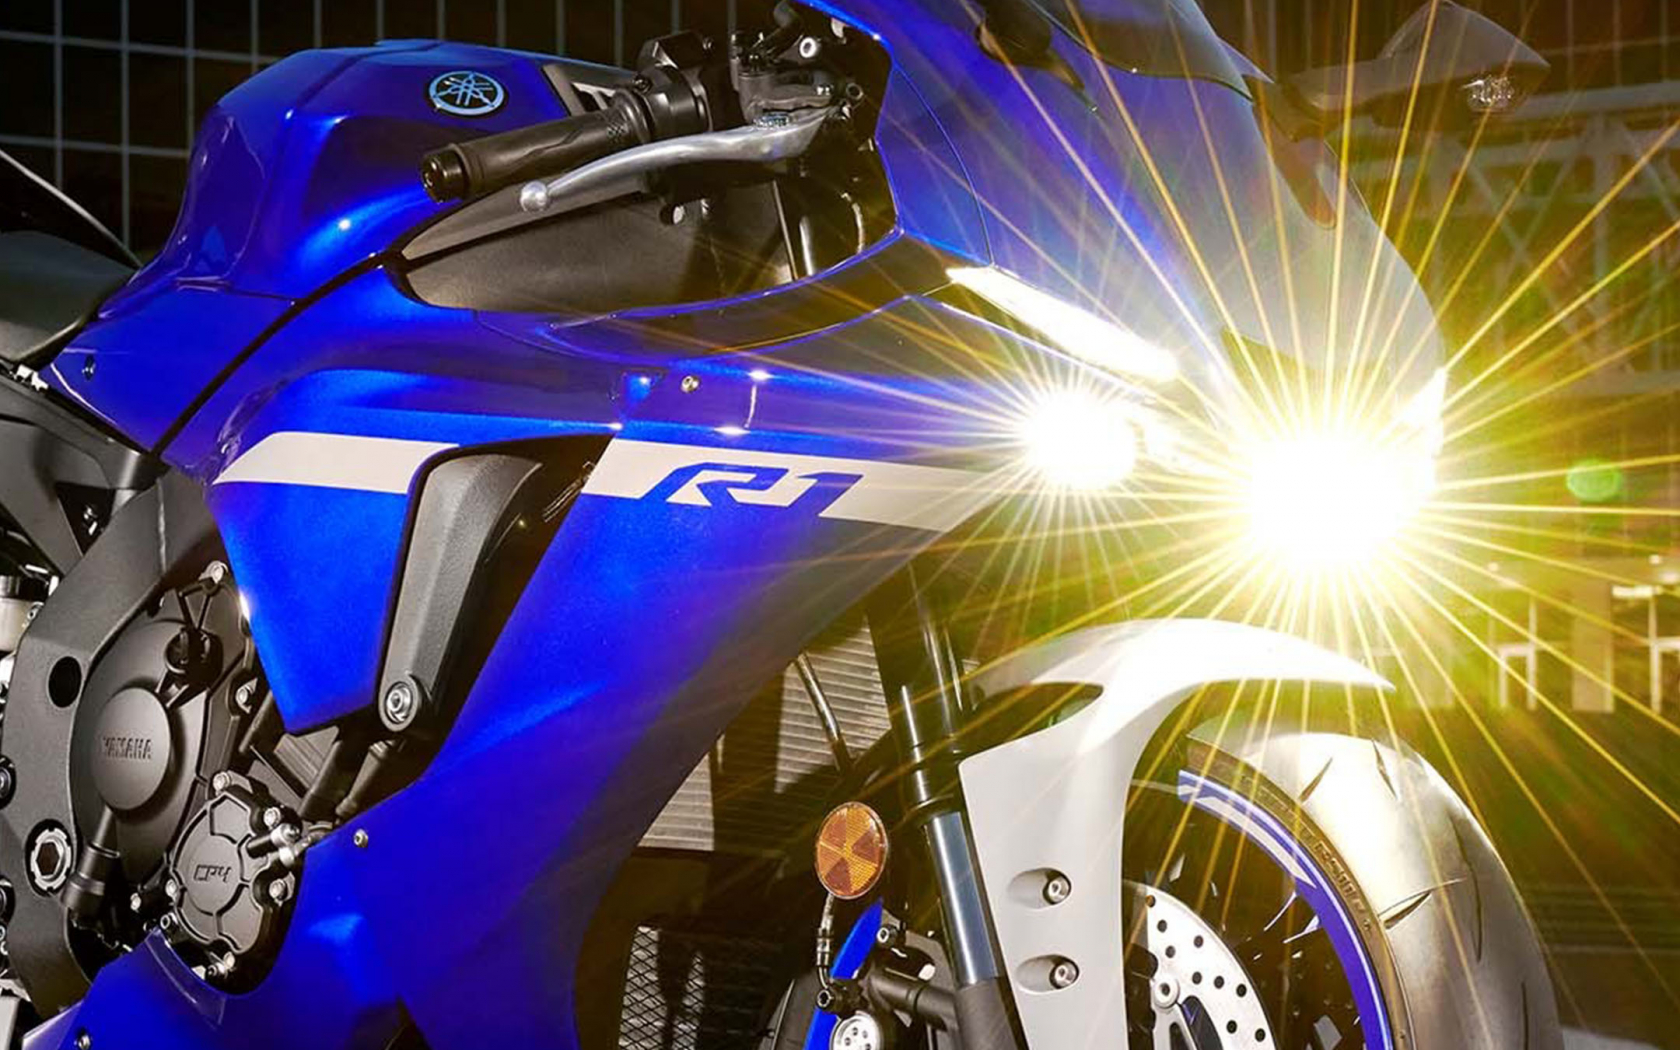 Free Download Yamaha Yzf R1 2020 4k Ultra Hd Mobile Wallpaper 2160x3840 For Your Desktop Mobile Tablet Explore 51 Latest Mobile 2020 Wallpapers Latest Mobile 2020 Wallpapers Latest Mobile Wallpapers Latest Desktop 2020 Wallpapers